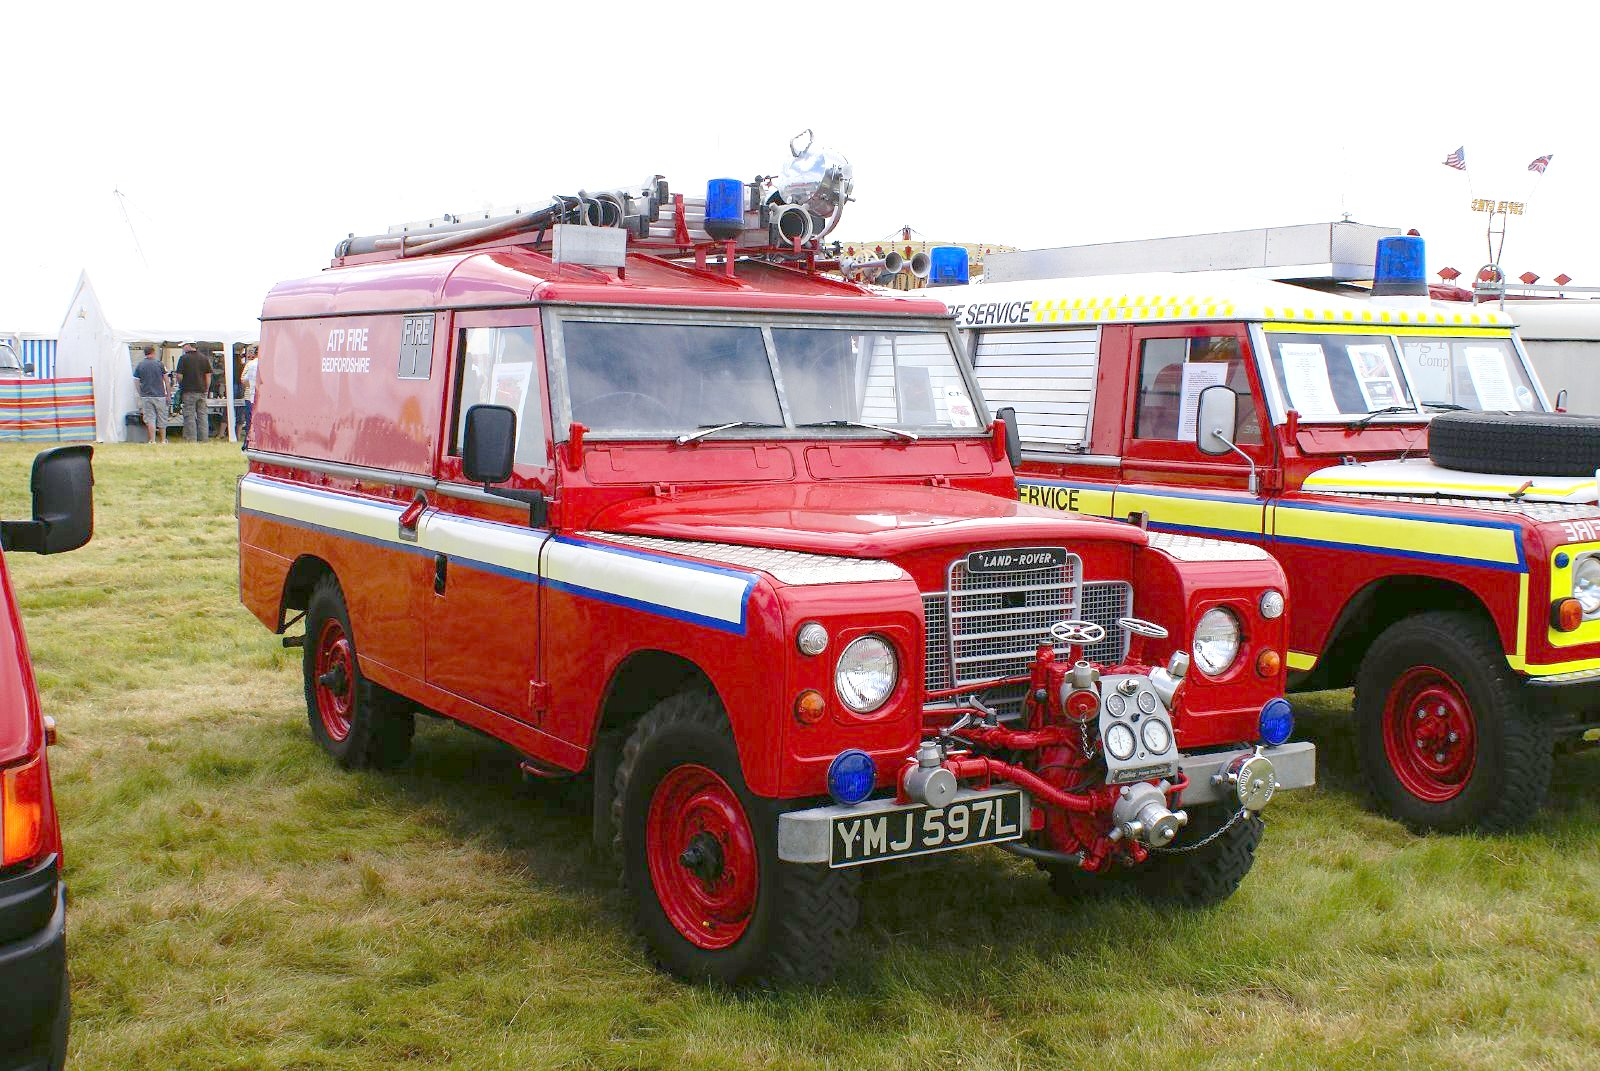 Jeep Truck >> File:Land Rover Fire Truck (2621972802).jpg - Wikimedia Commons